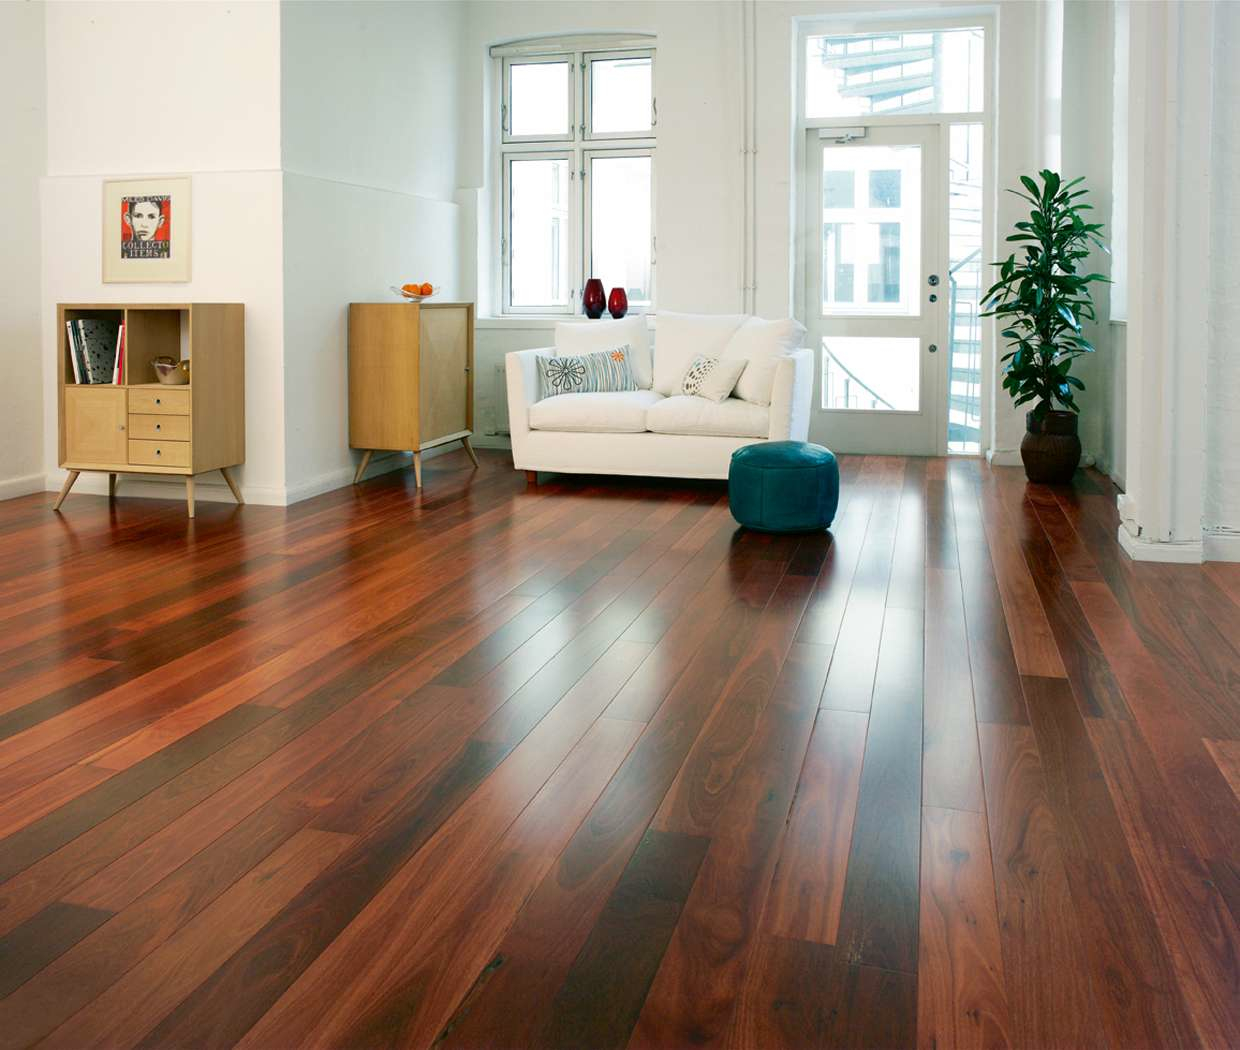 Costco Wood Flooring | Home Depot Carpet Reviews | Lowes Berber Carpet